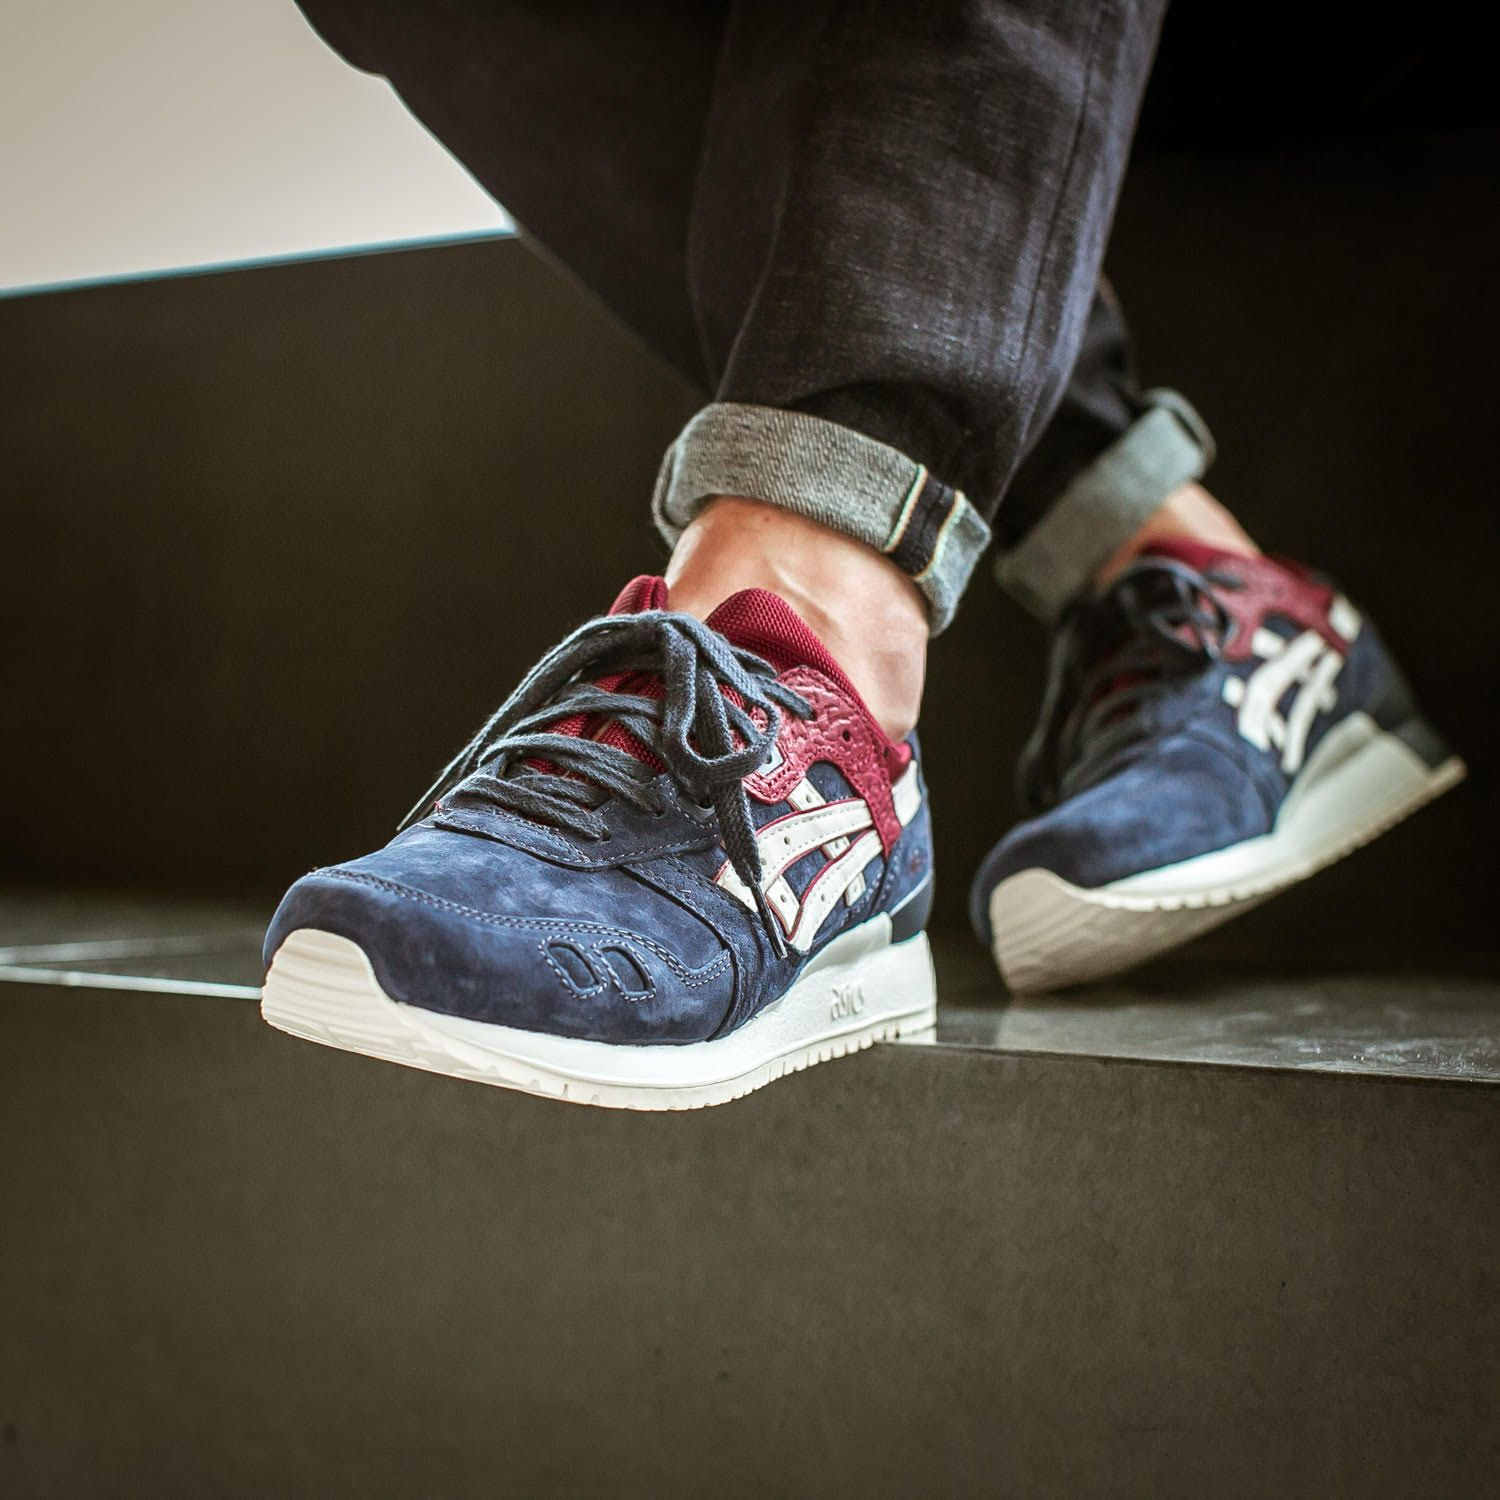 asics gel lyte 1987 deepblue